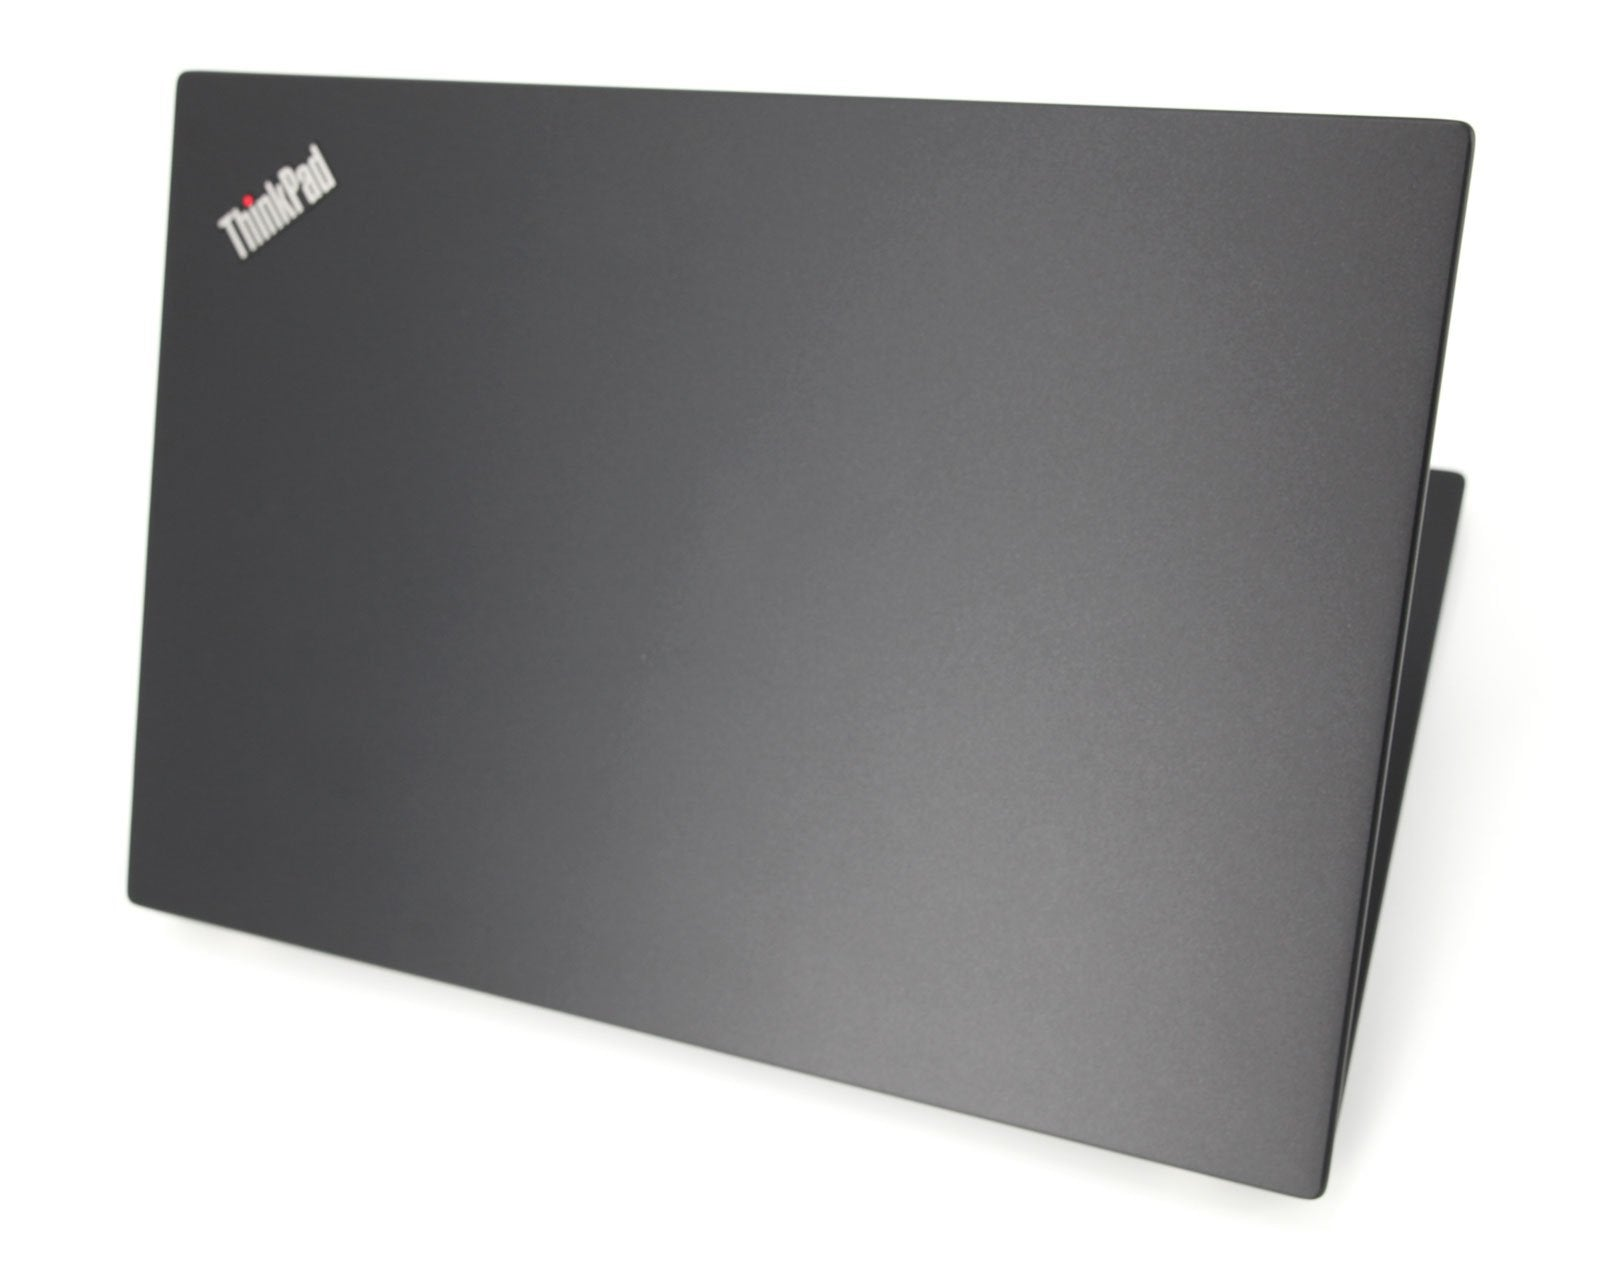 Lenovo Thinkpad X13 Laptop: Core i7-10510, 512GB, 16GB RAM LTE Warranty - CruiseTech